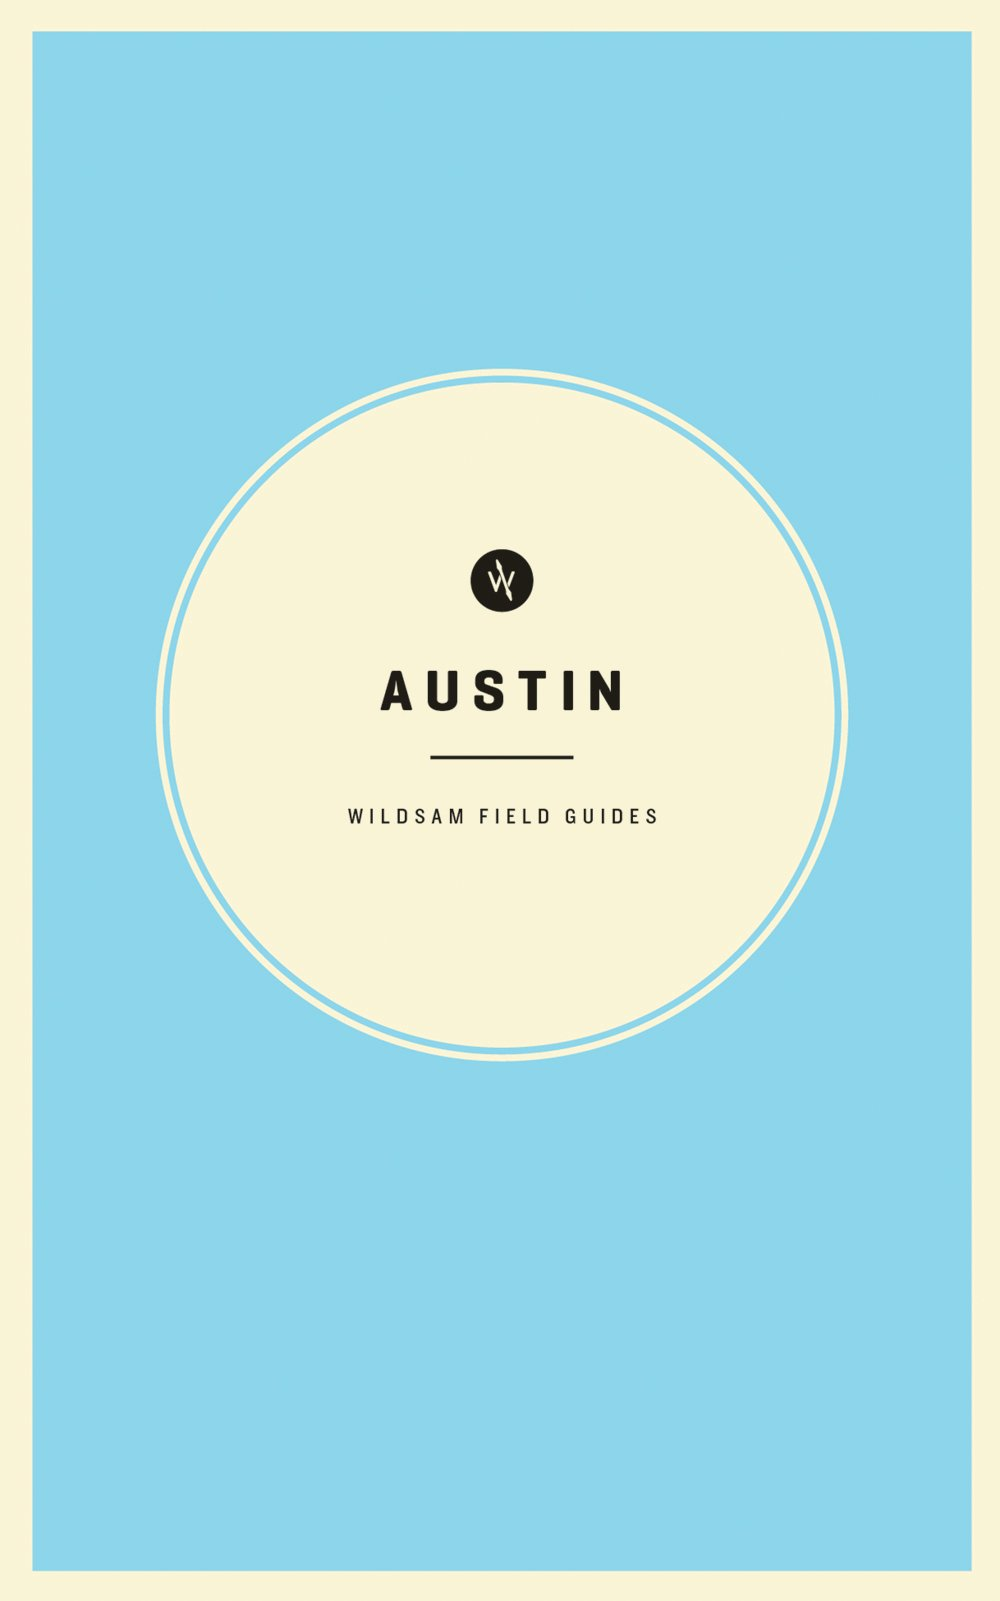 Wildsam Field Guides Austin American product image